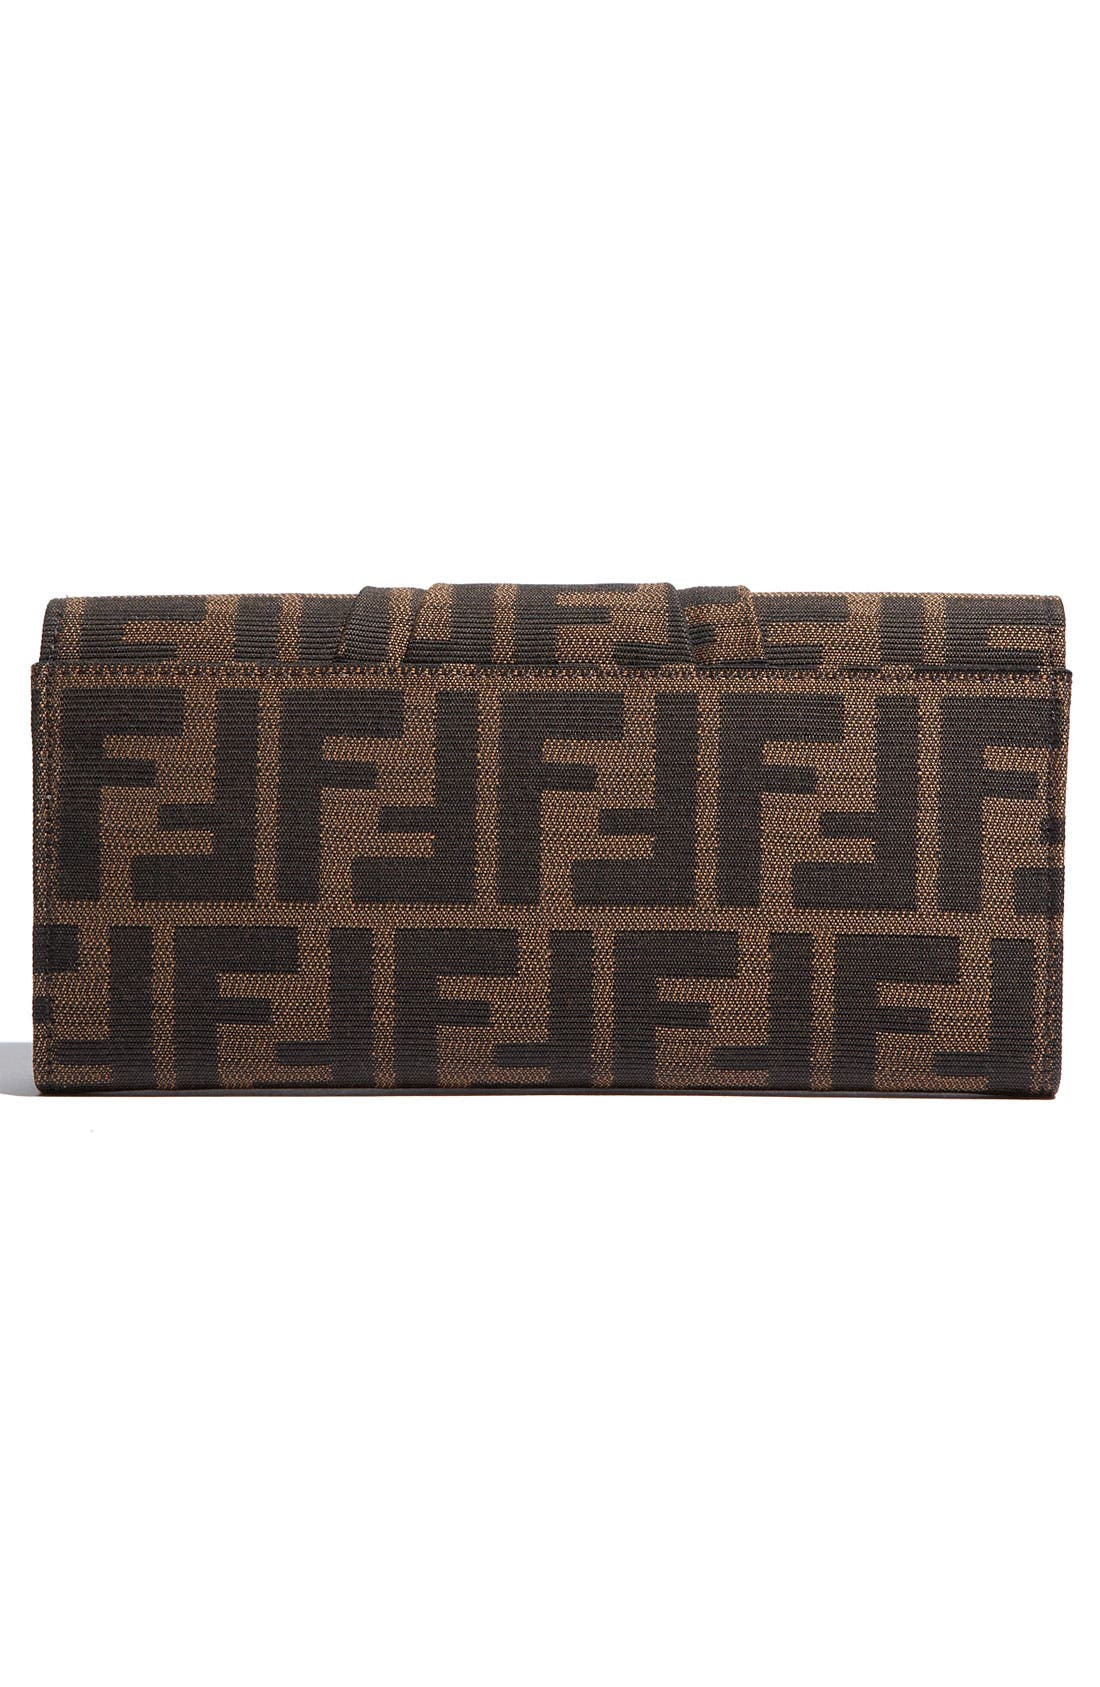 Alternate Image 3  - Fendi 'Zucca Mia' Clutch Wallet